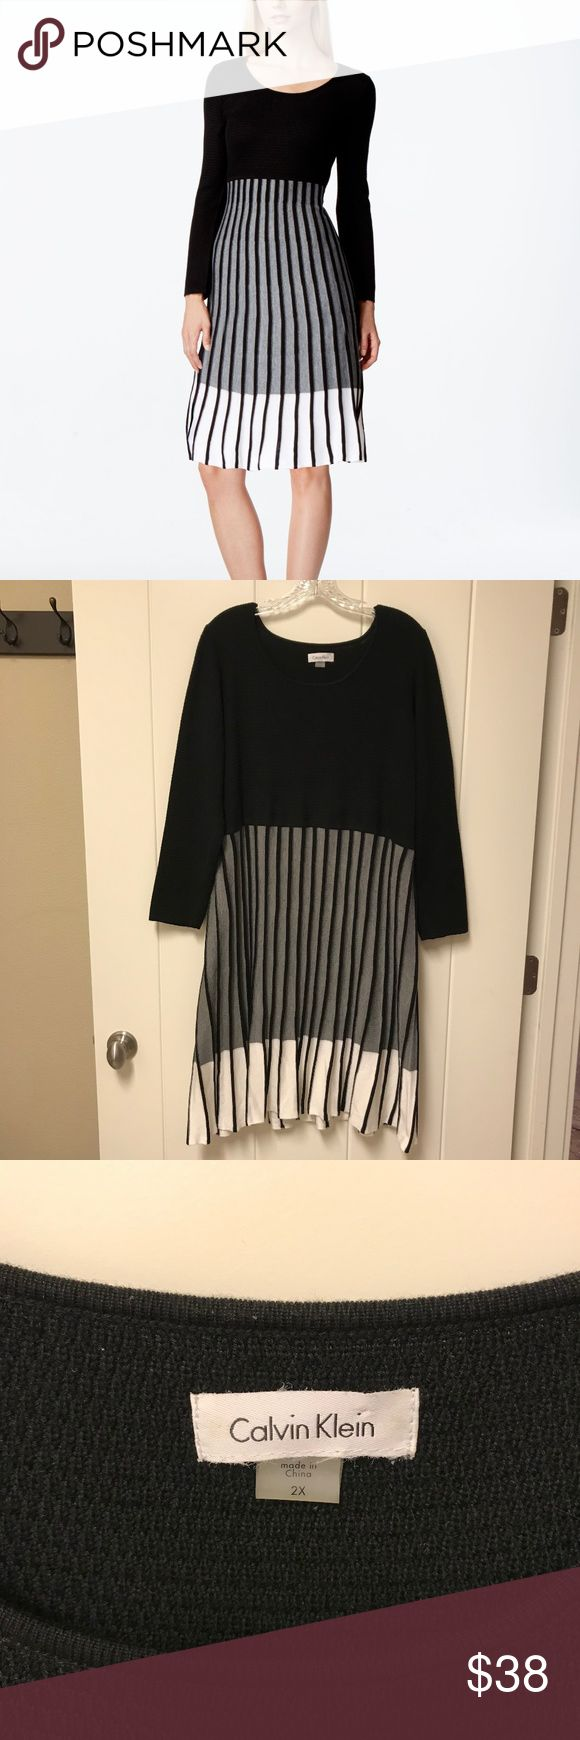 Calvin Klein Pleated Contrast Sweater Dress 2X Black, white and gray pleated skirt sweater dress by Calvin Klein.  Scoop neck, pullover style.  Very good pre-owned condition - there are a few nubs here and there on the fabric (see pic #5).  Bust across the front area measures approx. 22 inches, and the length of the dress measures approx. 40.5 inches. Calvin Klein Dresses